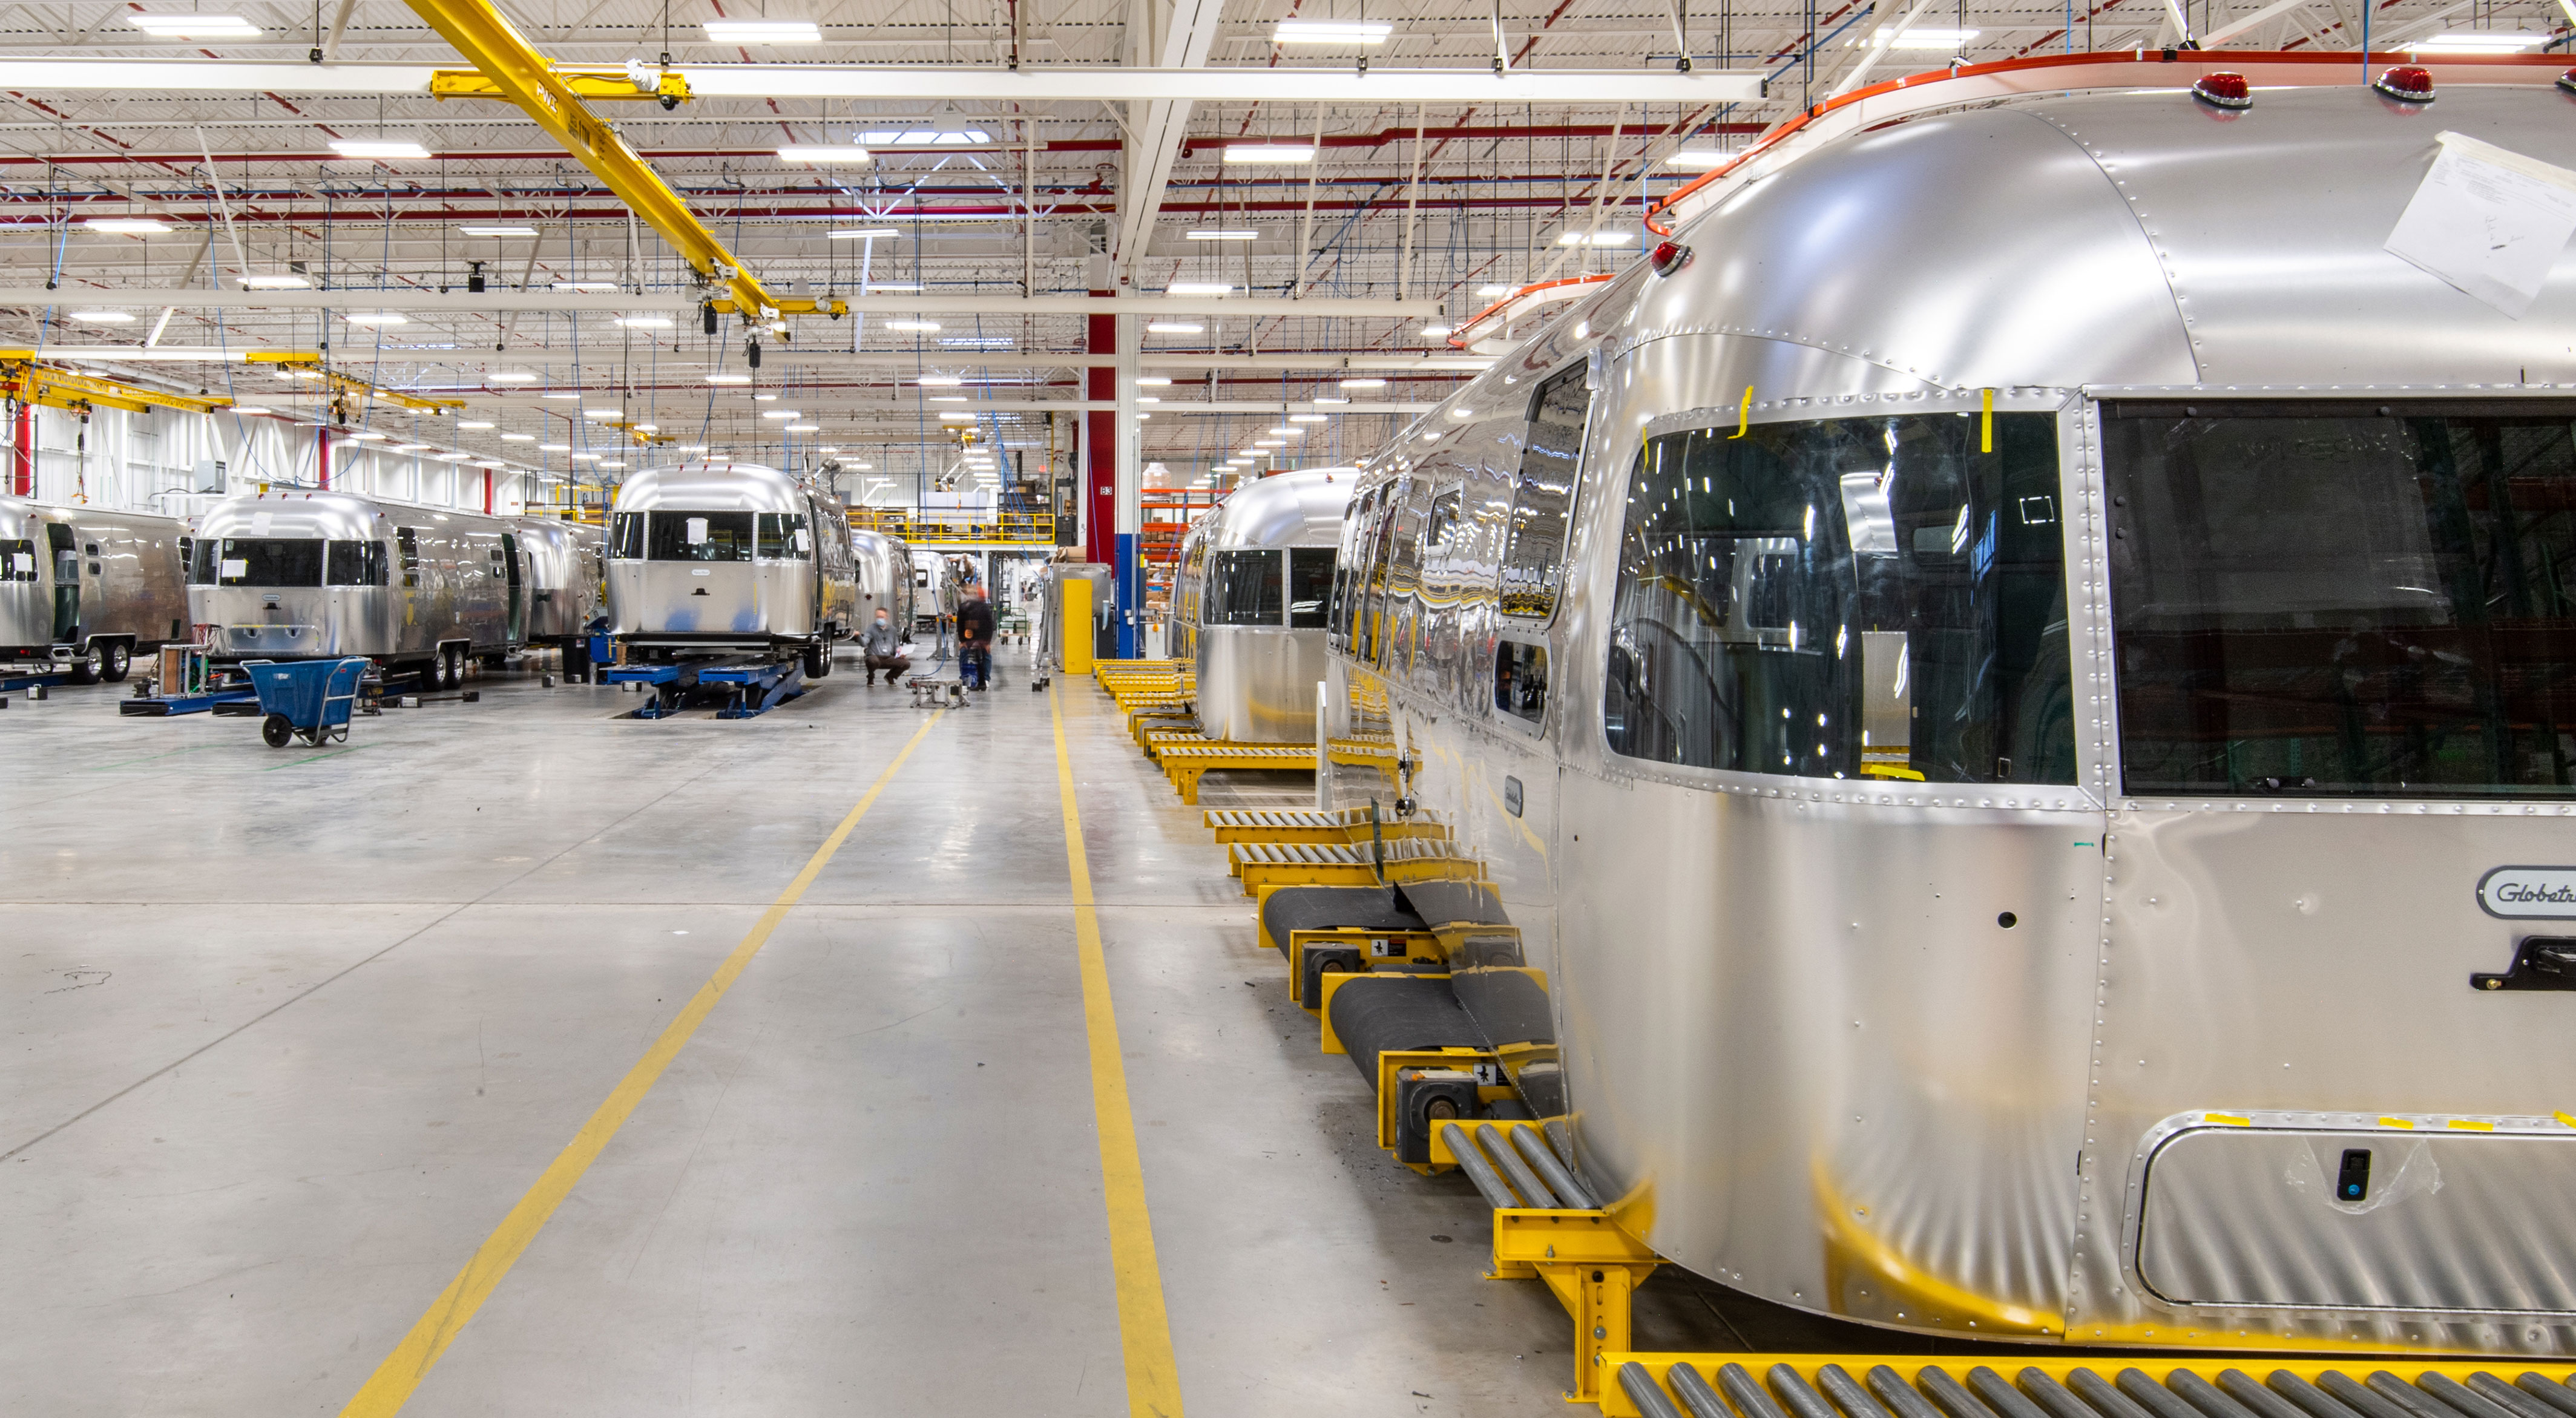 Multiple Airstreams are shown being worked on by employees